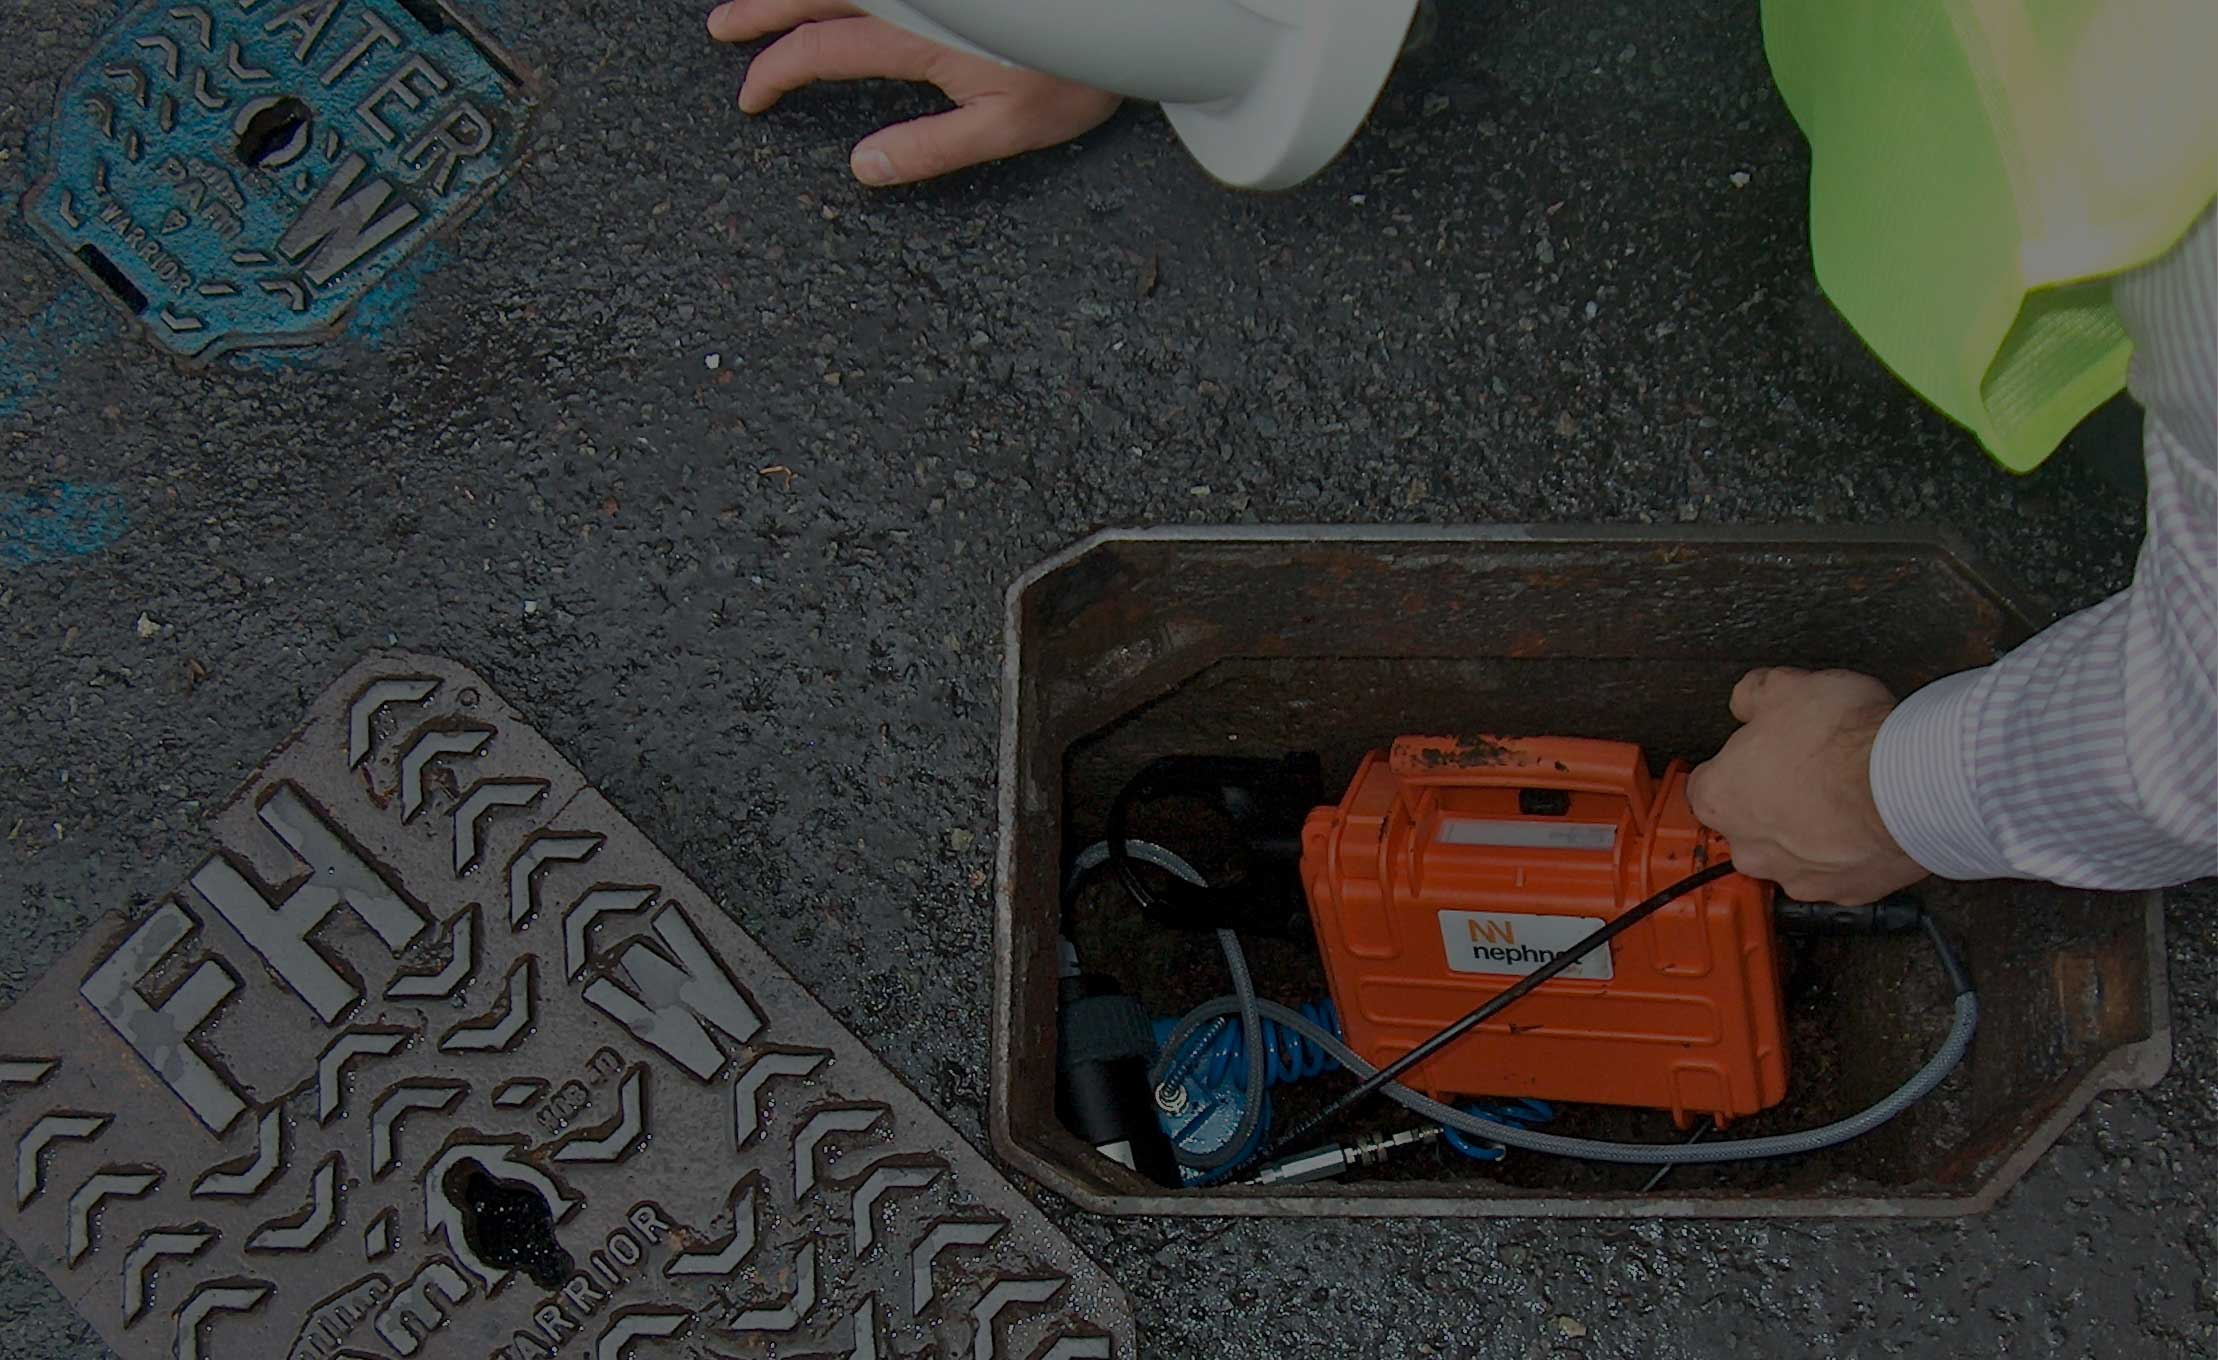 Nephnet-in-manhole-with-black-overlay1